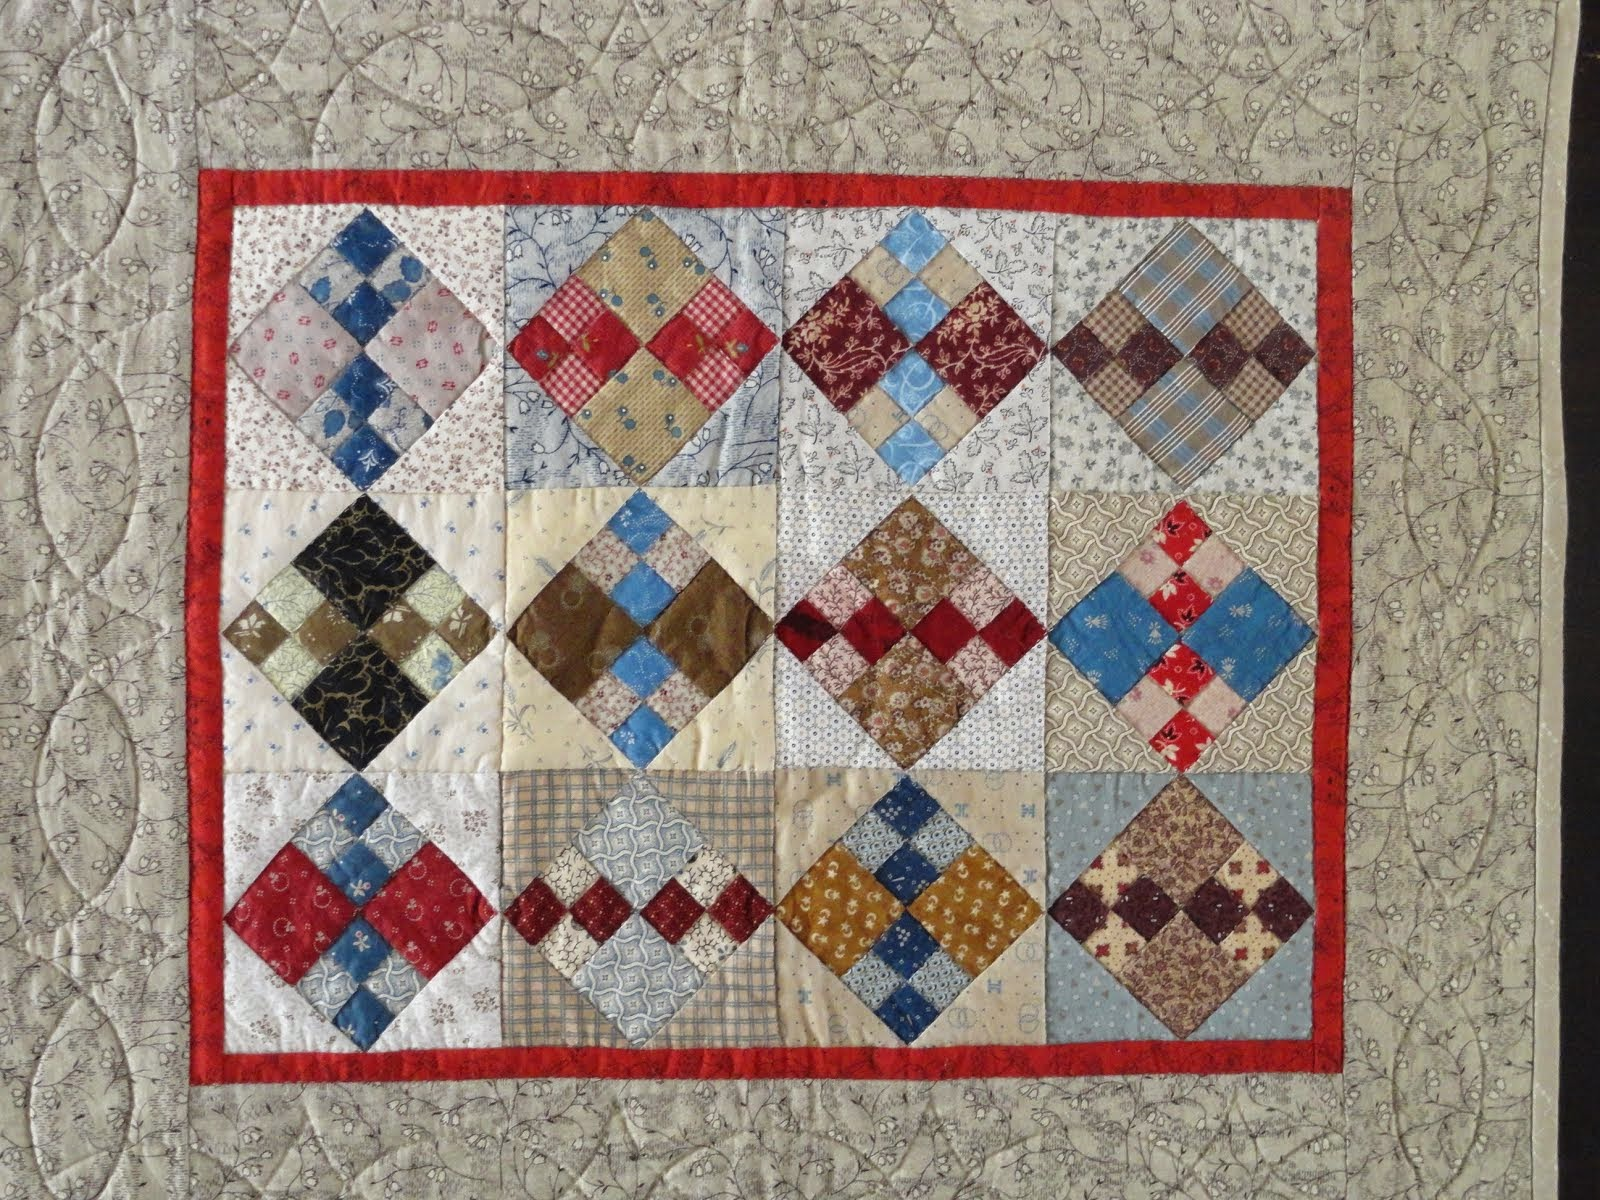 CIVIL WAR QUILTJE